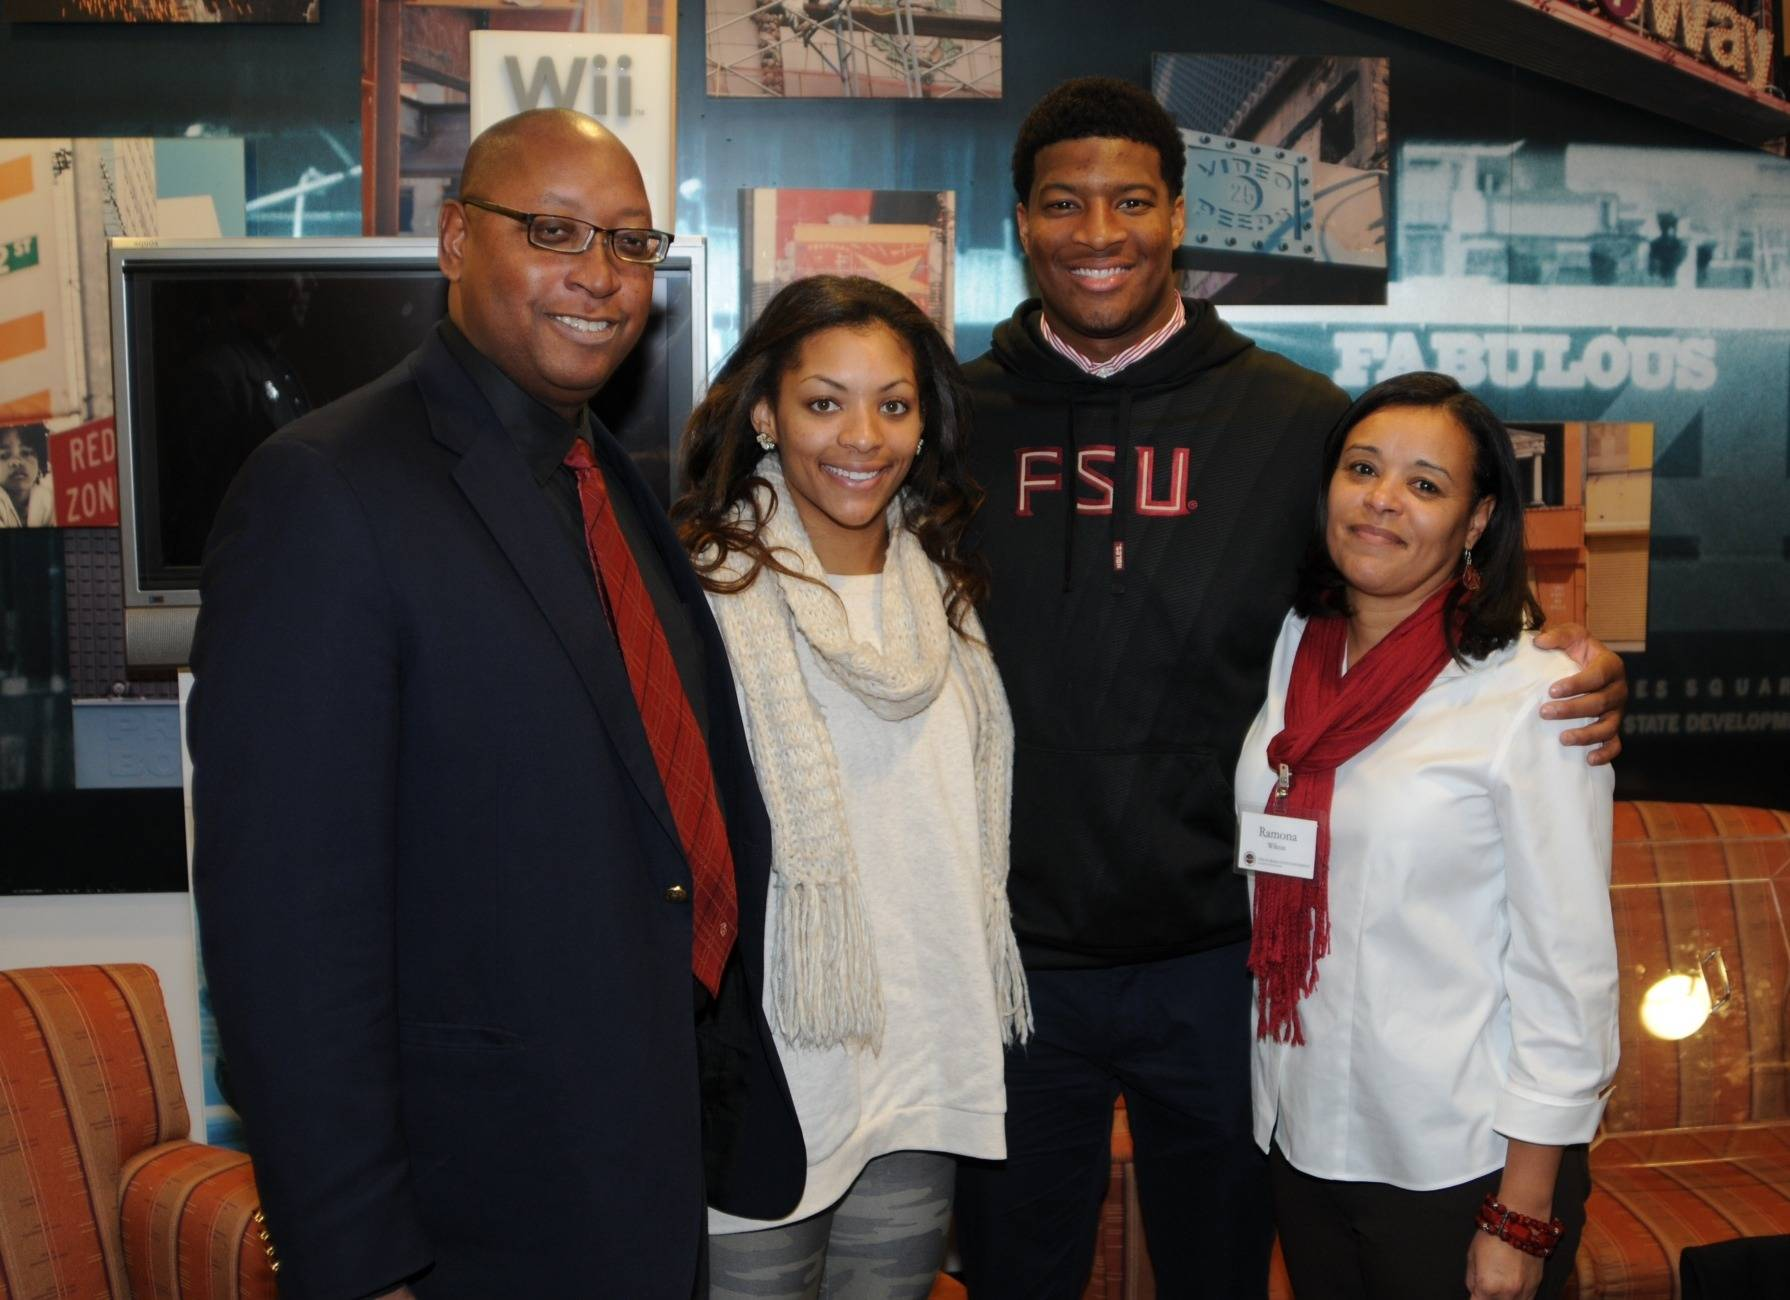 Director of Athletics Stan Wilcox with Jameis Winston (Photo by Jeff Romance)